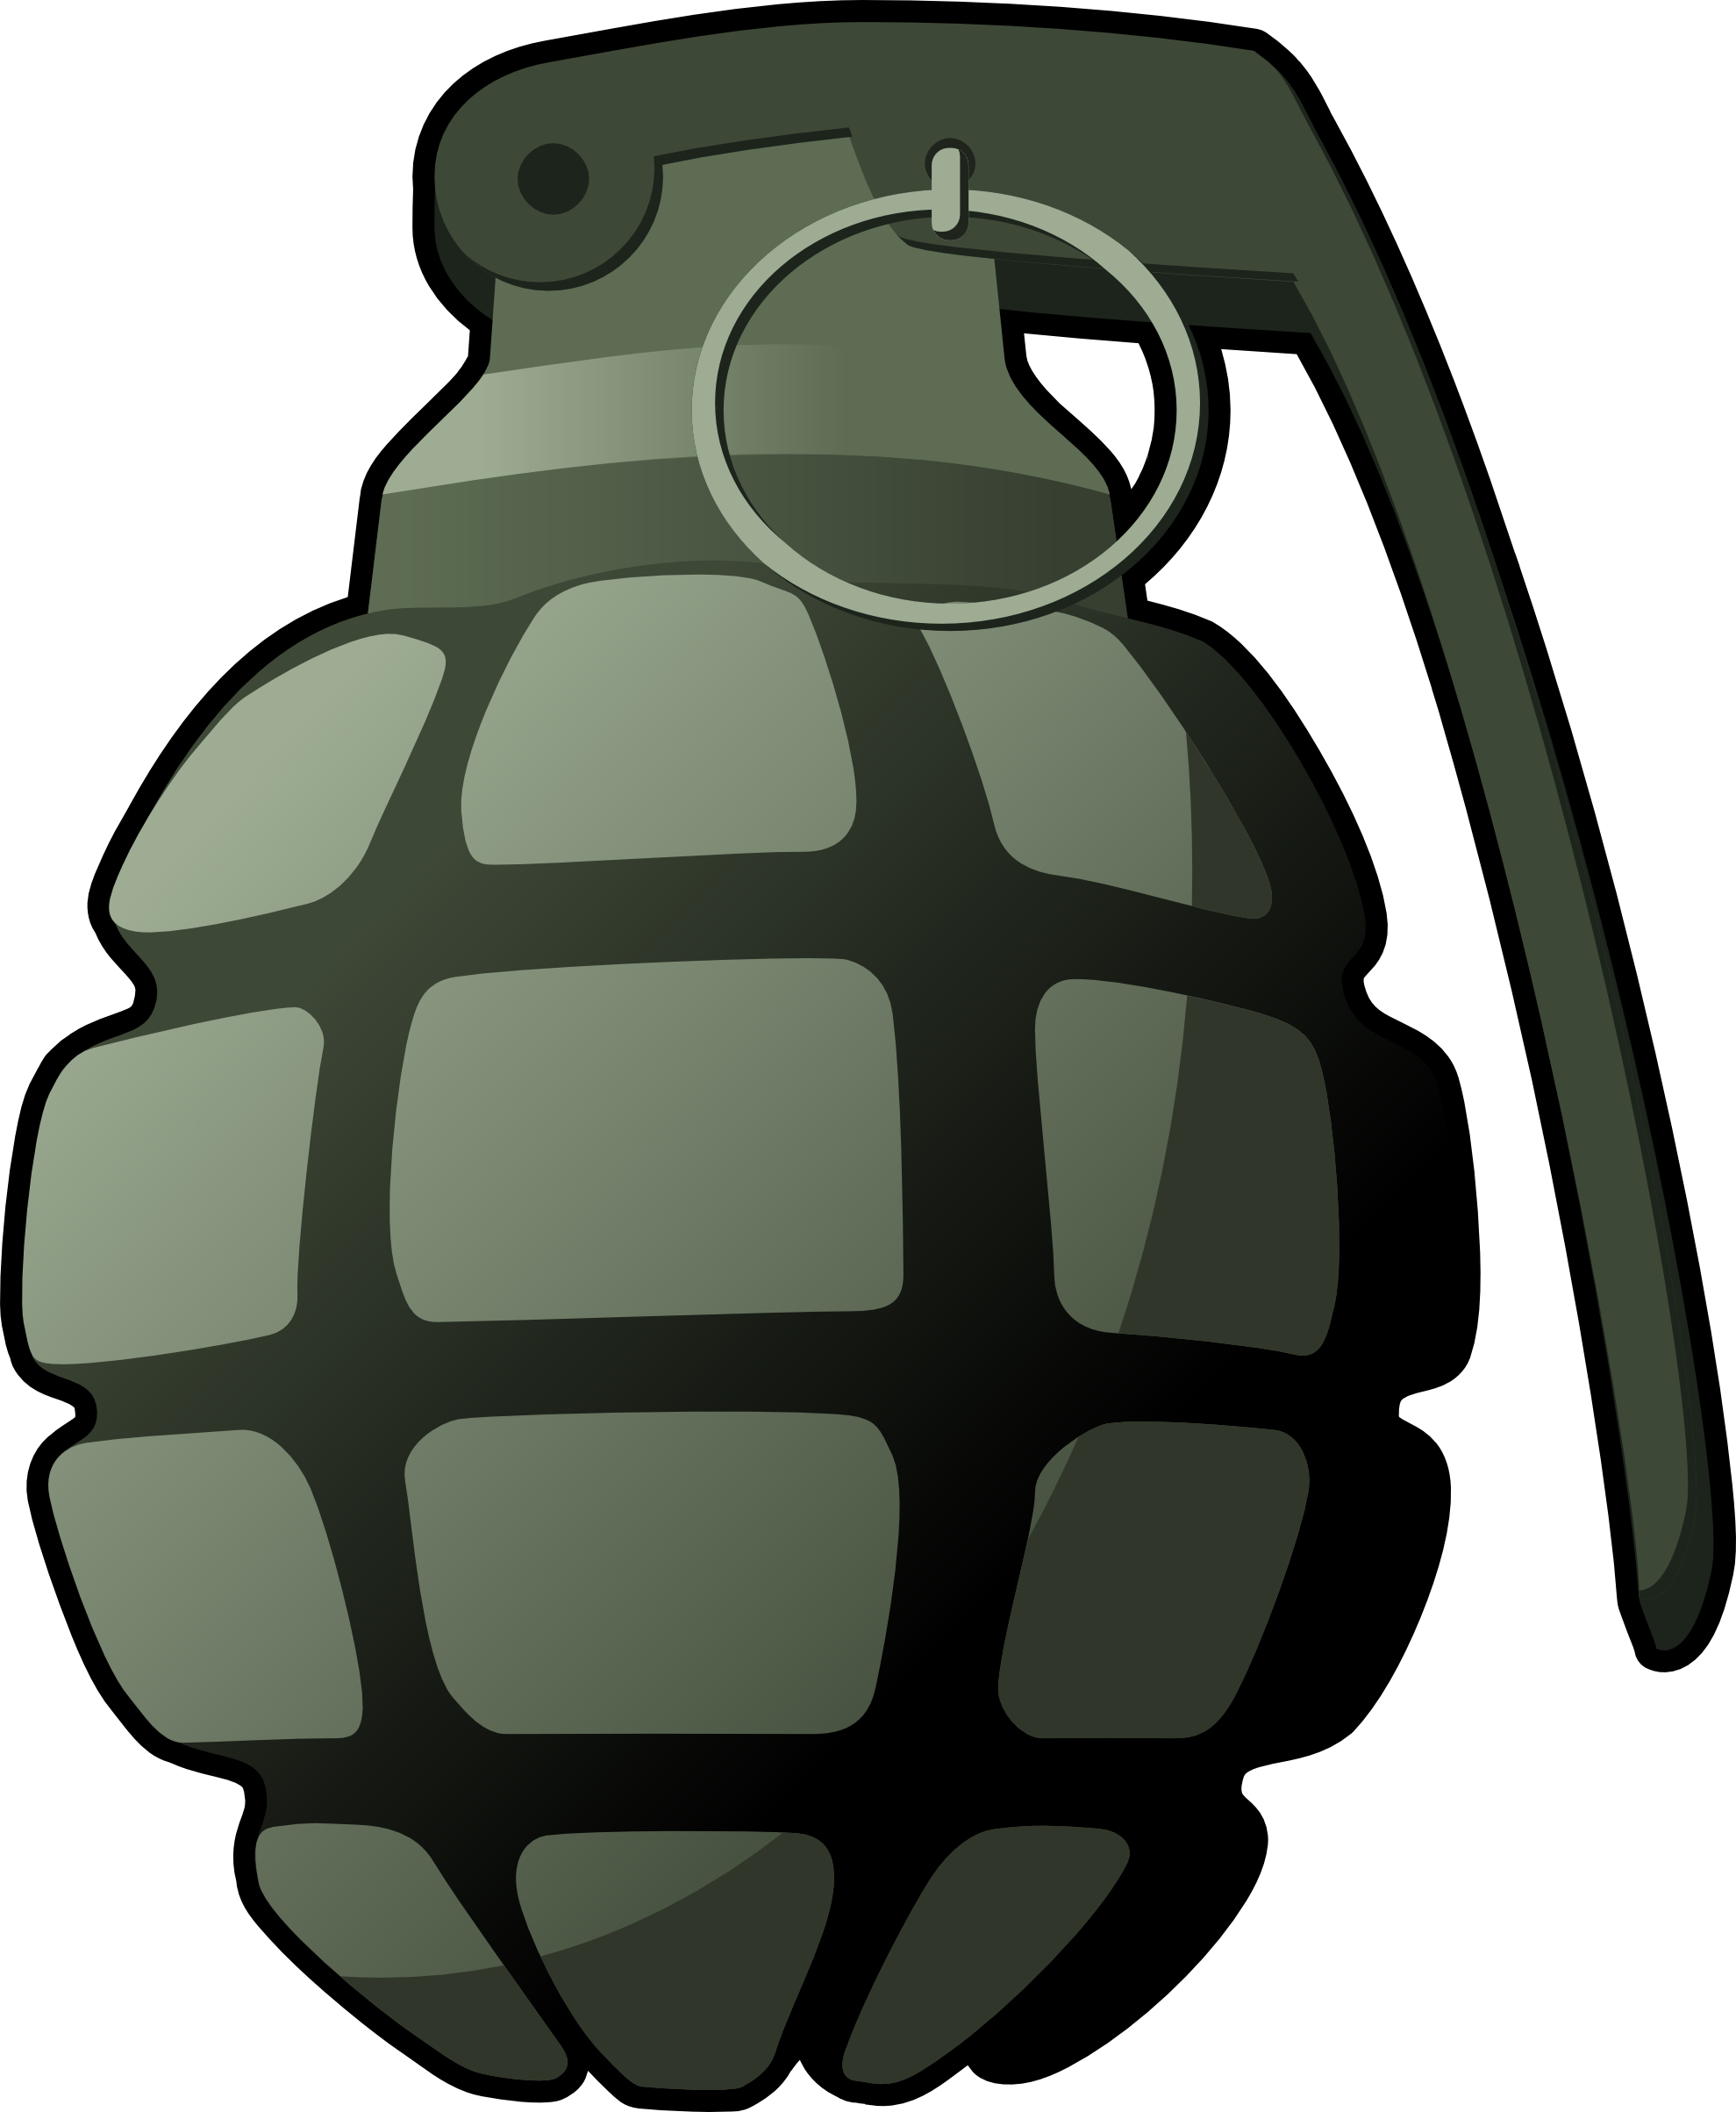 Drawn grenade animated 20clipart Panda Images Clipart Free